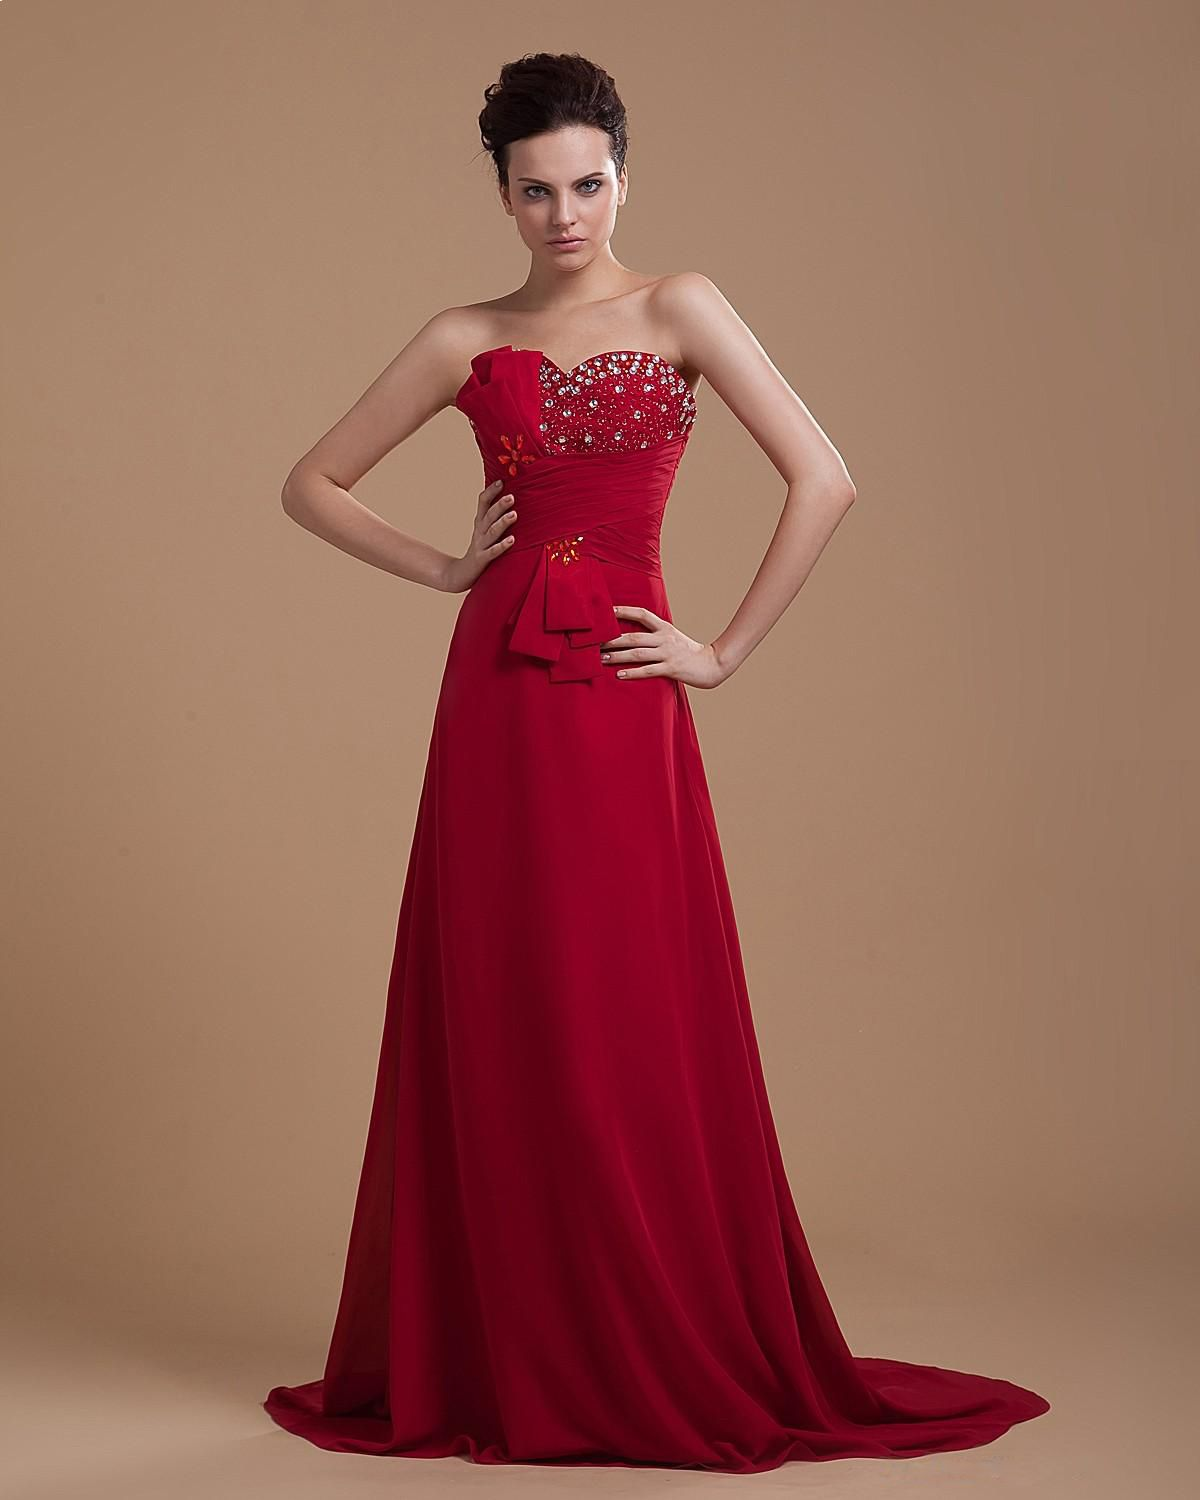 Sweetheart floor length chiffon prom dress with beaded details in